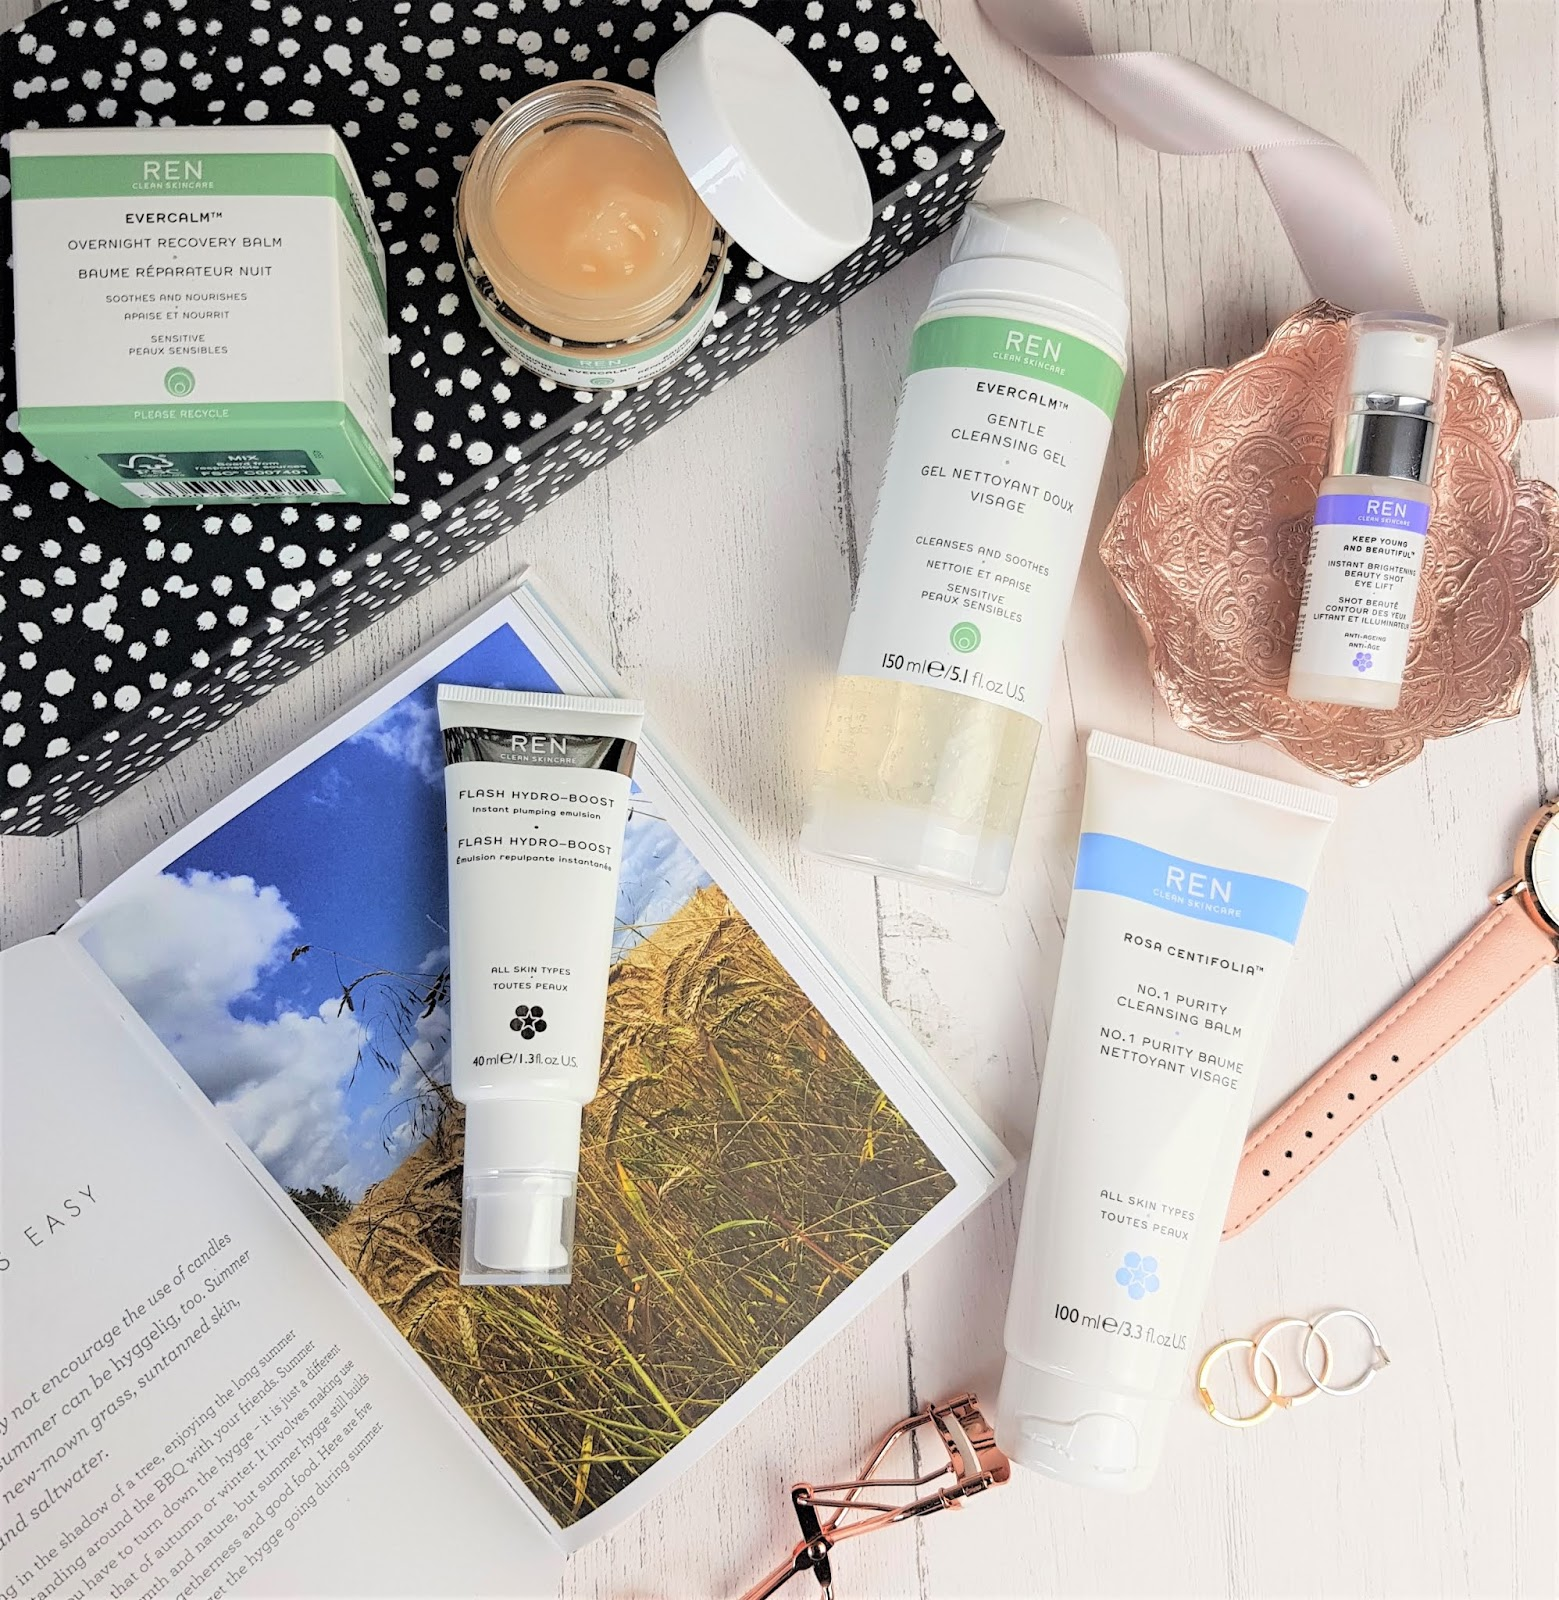 REN Skincare Favourites. 5 To Try From REN Skincare